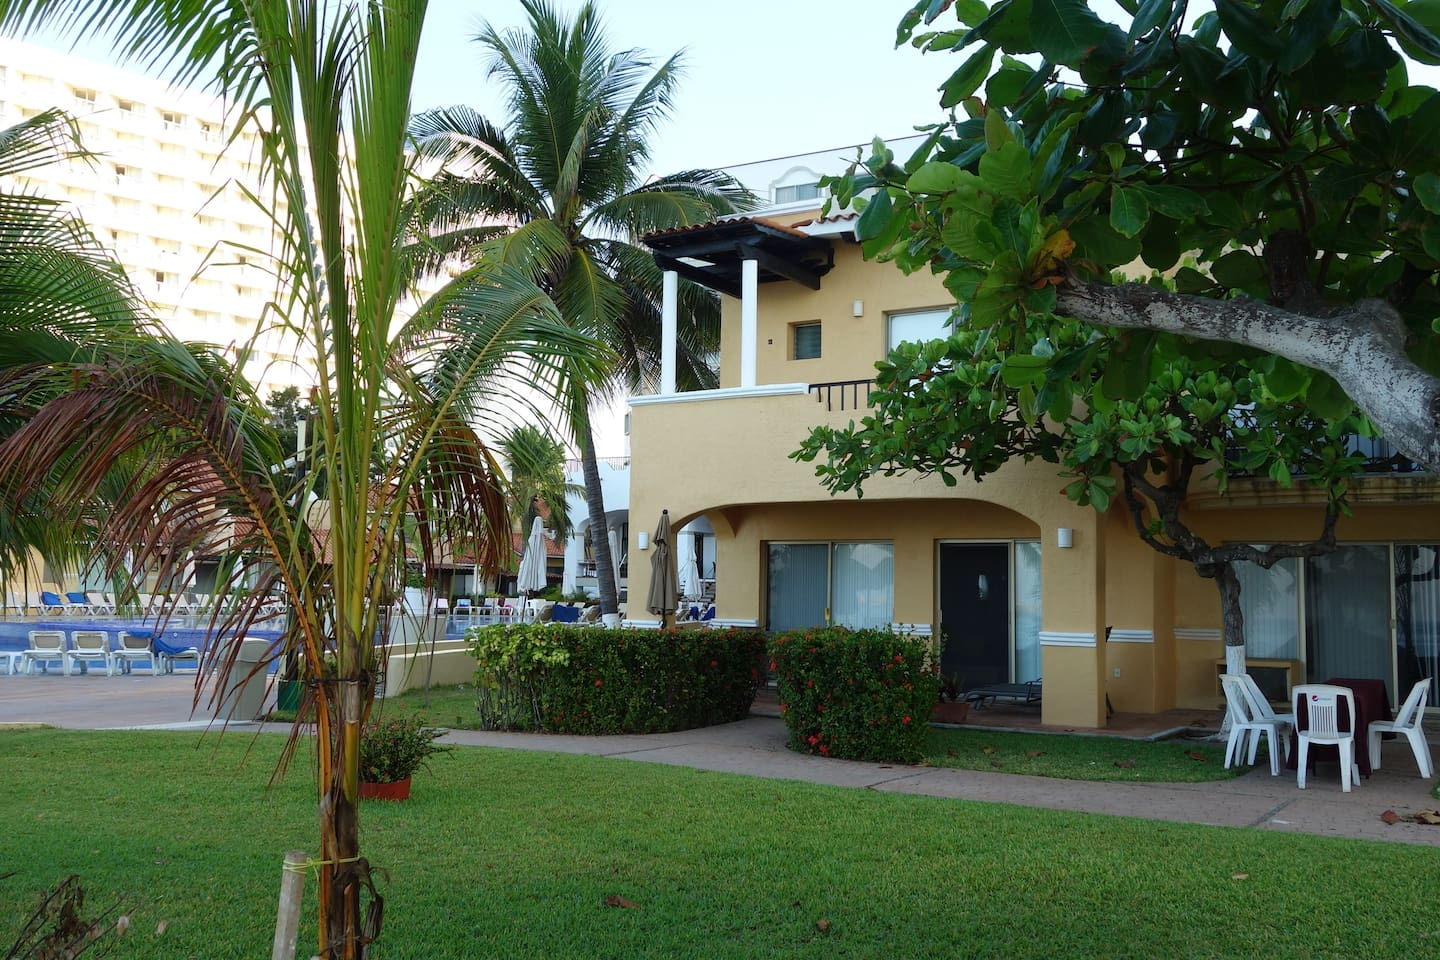 Ocean side of Villa 11, with balcony and private patio (pool seen in background)